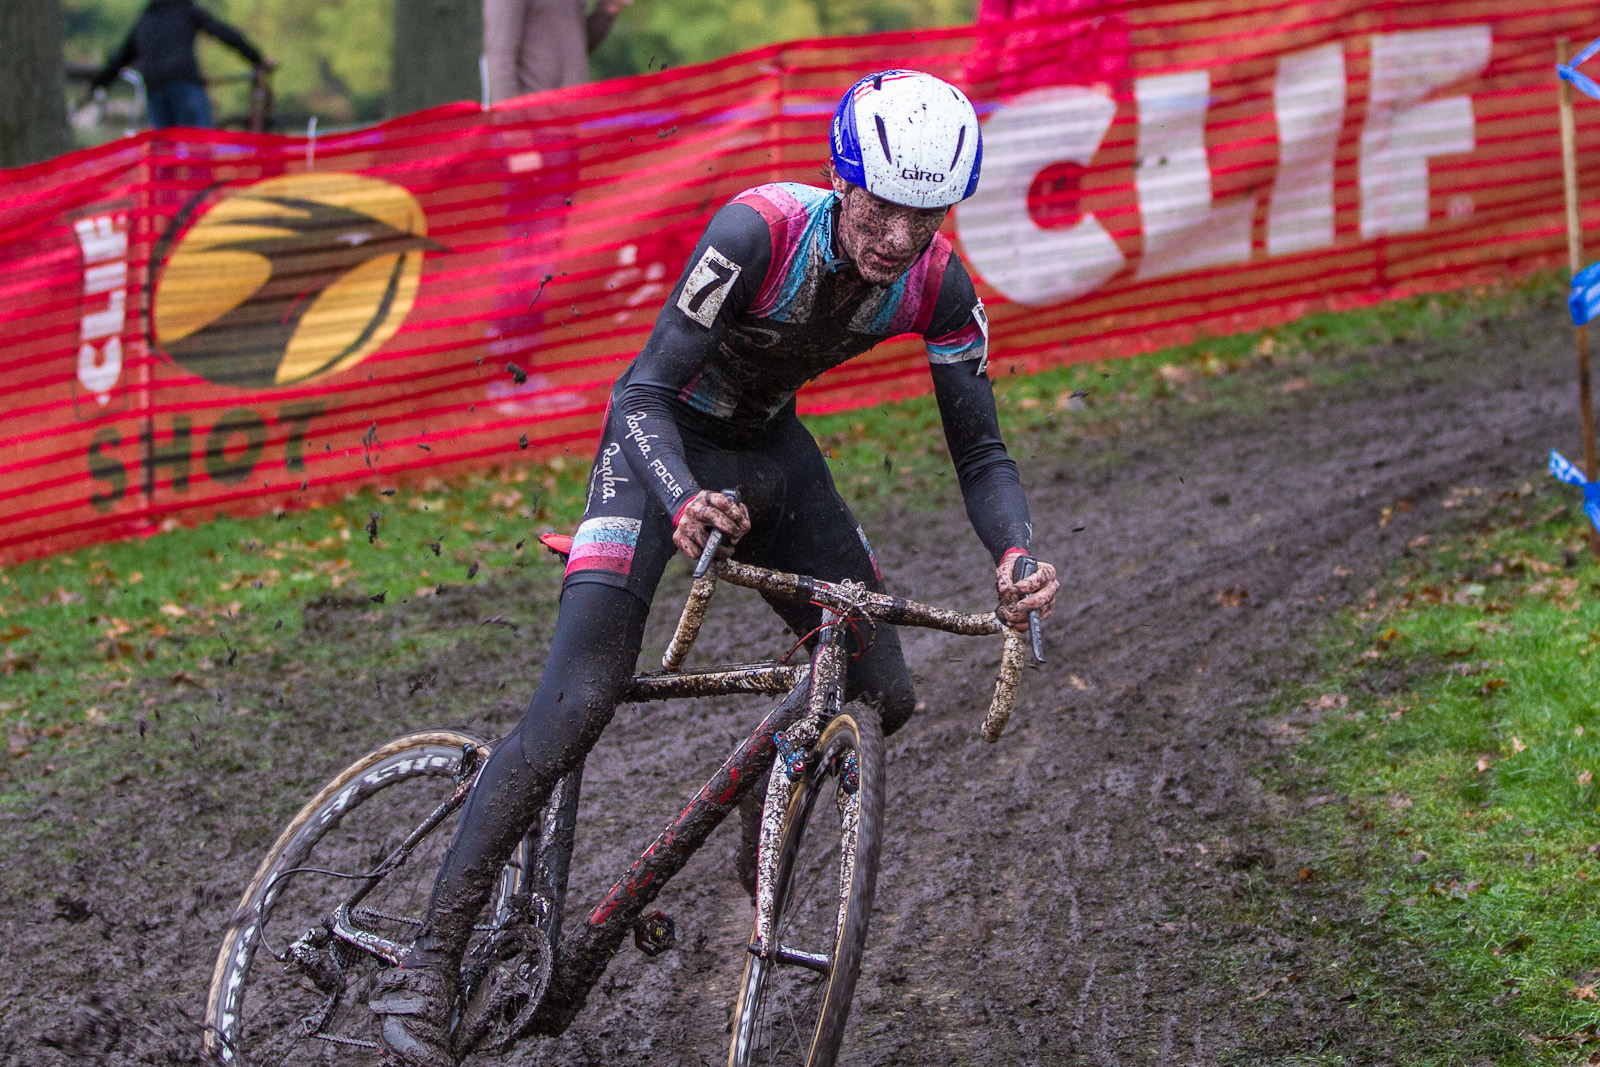 Zach McDonald battles the mud enroute to a victory in Providence. Photo: Todd Perkaski.